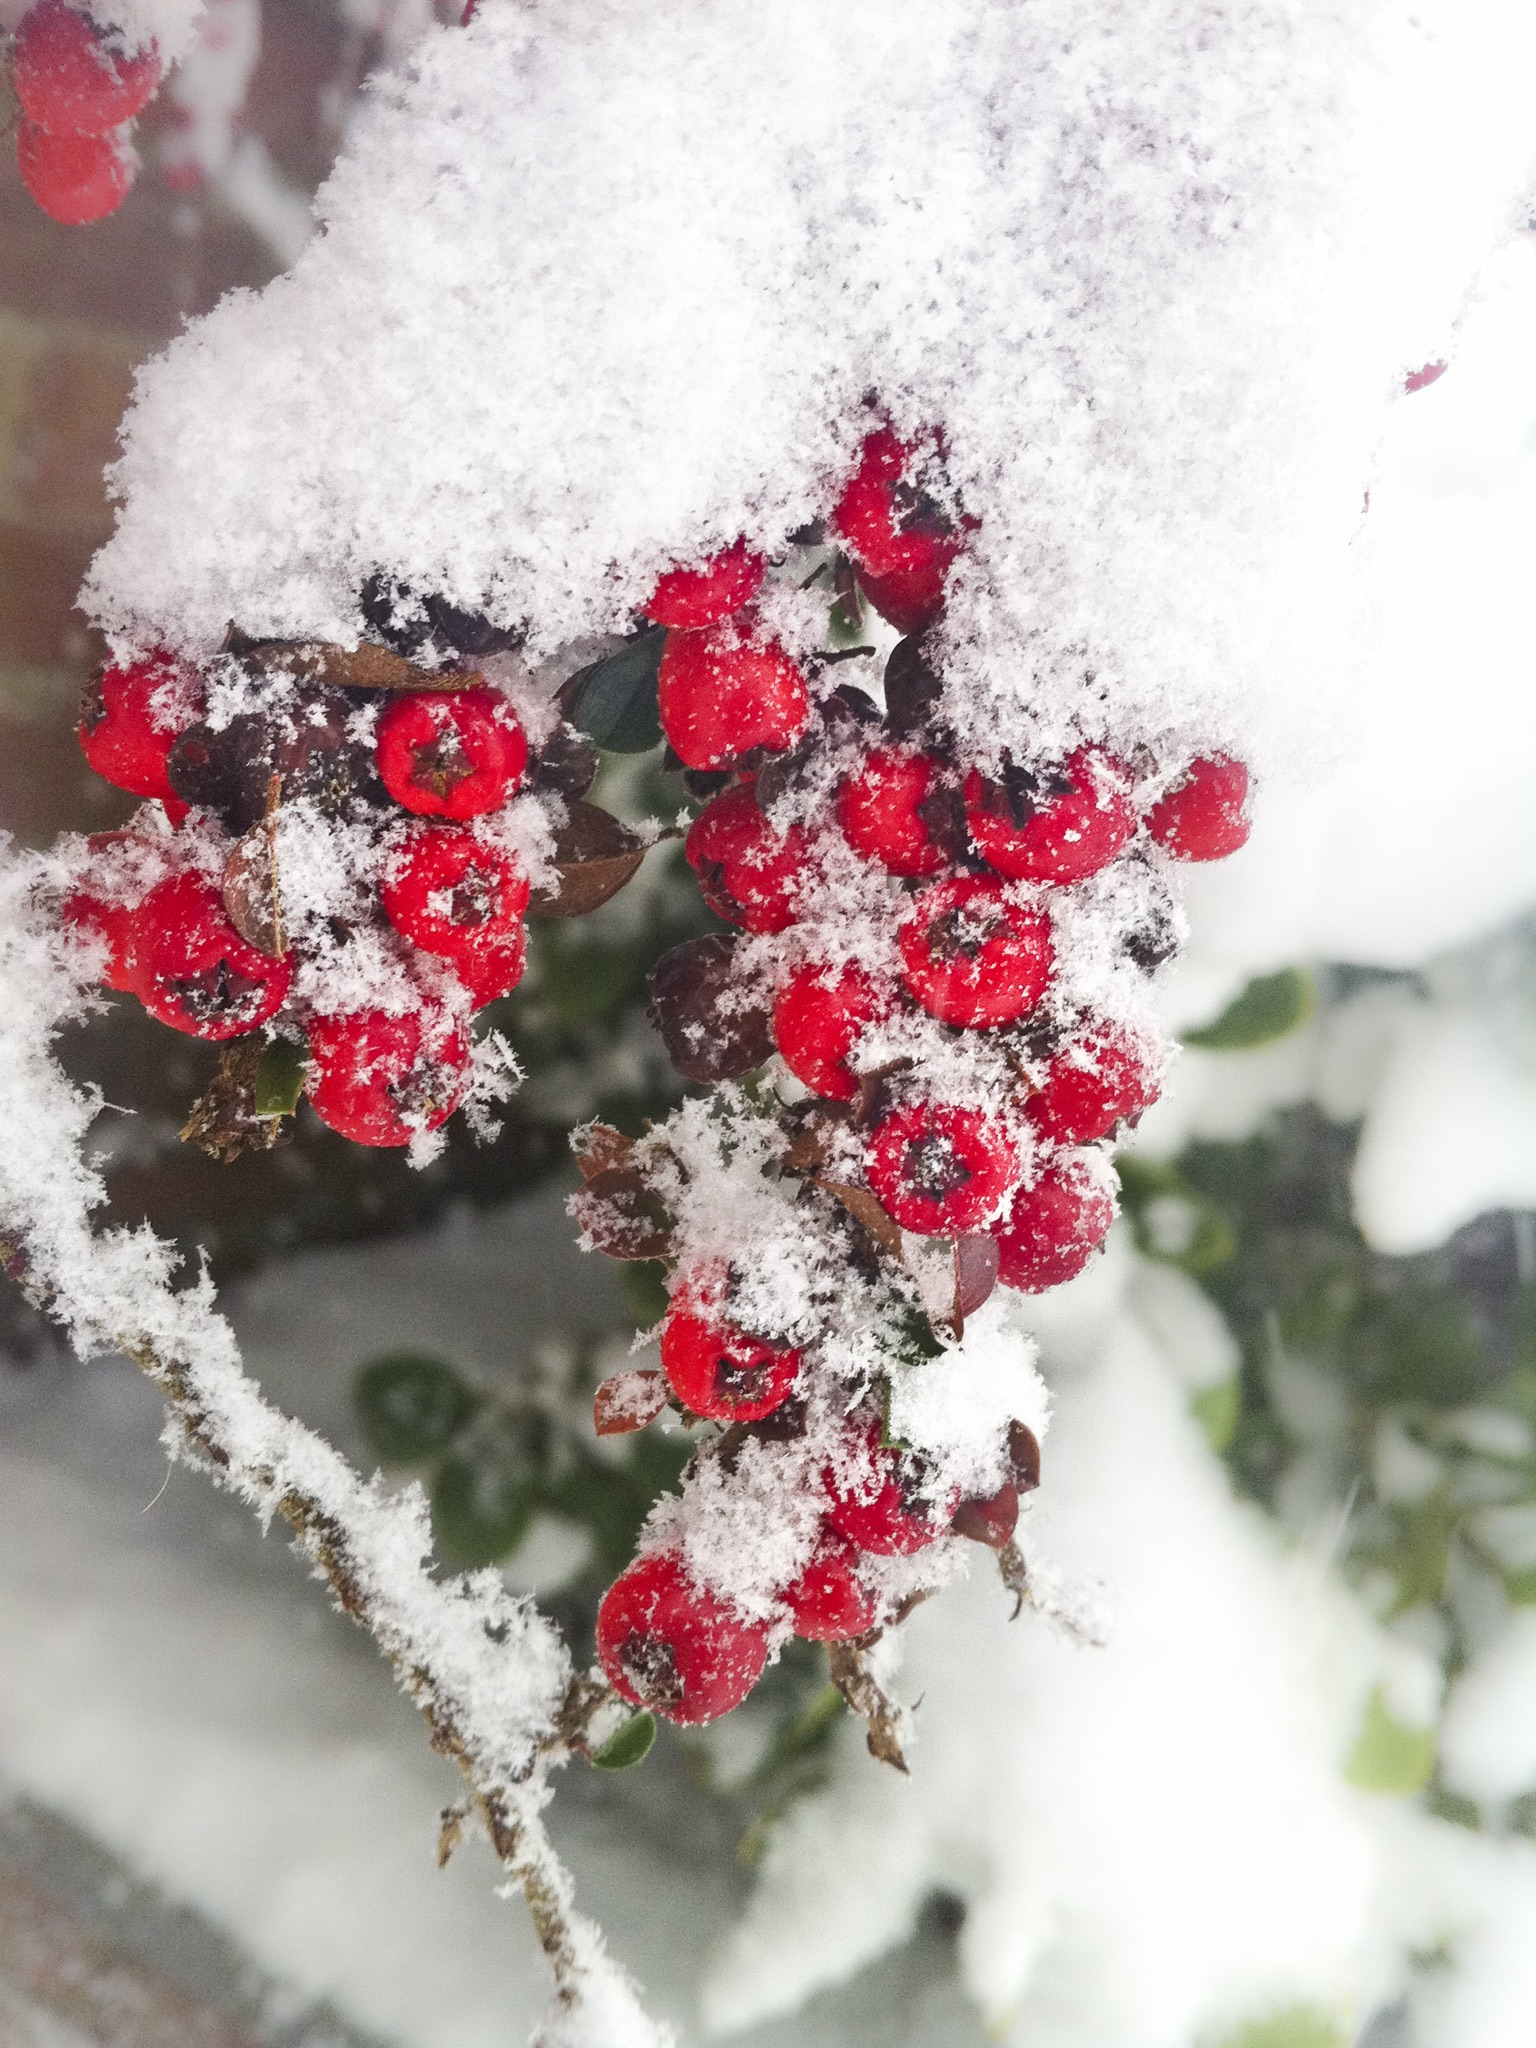 Winter Christmas Xmas Red Berries Snow Cold